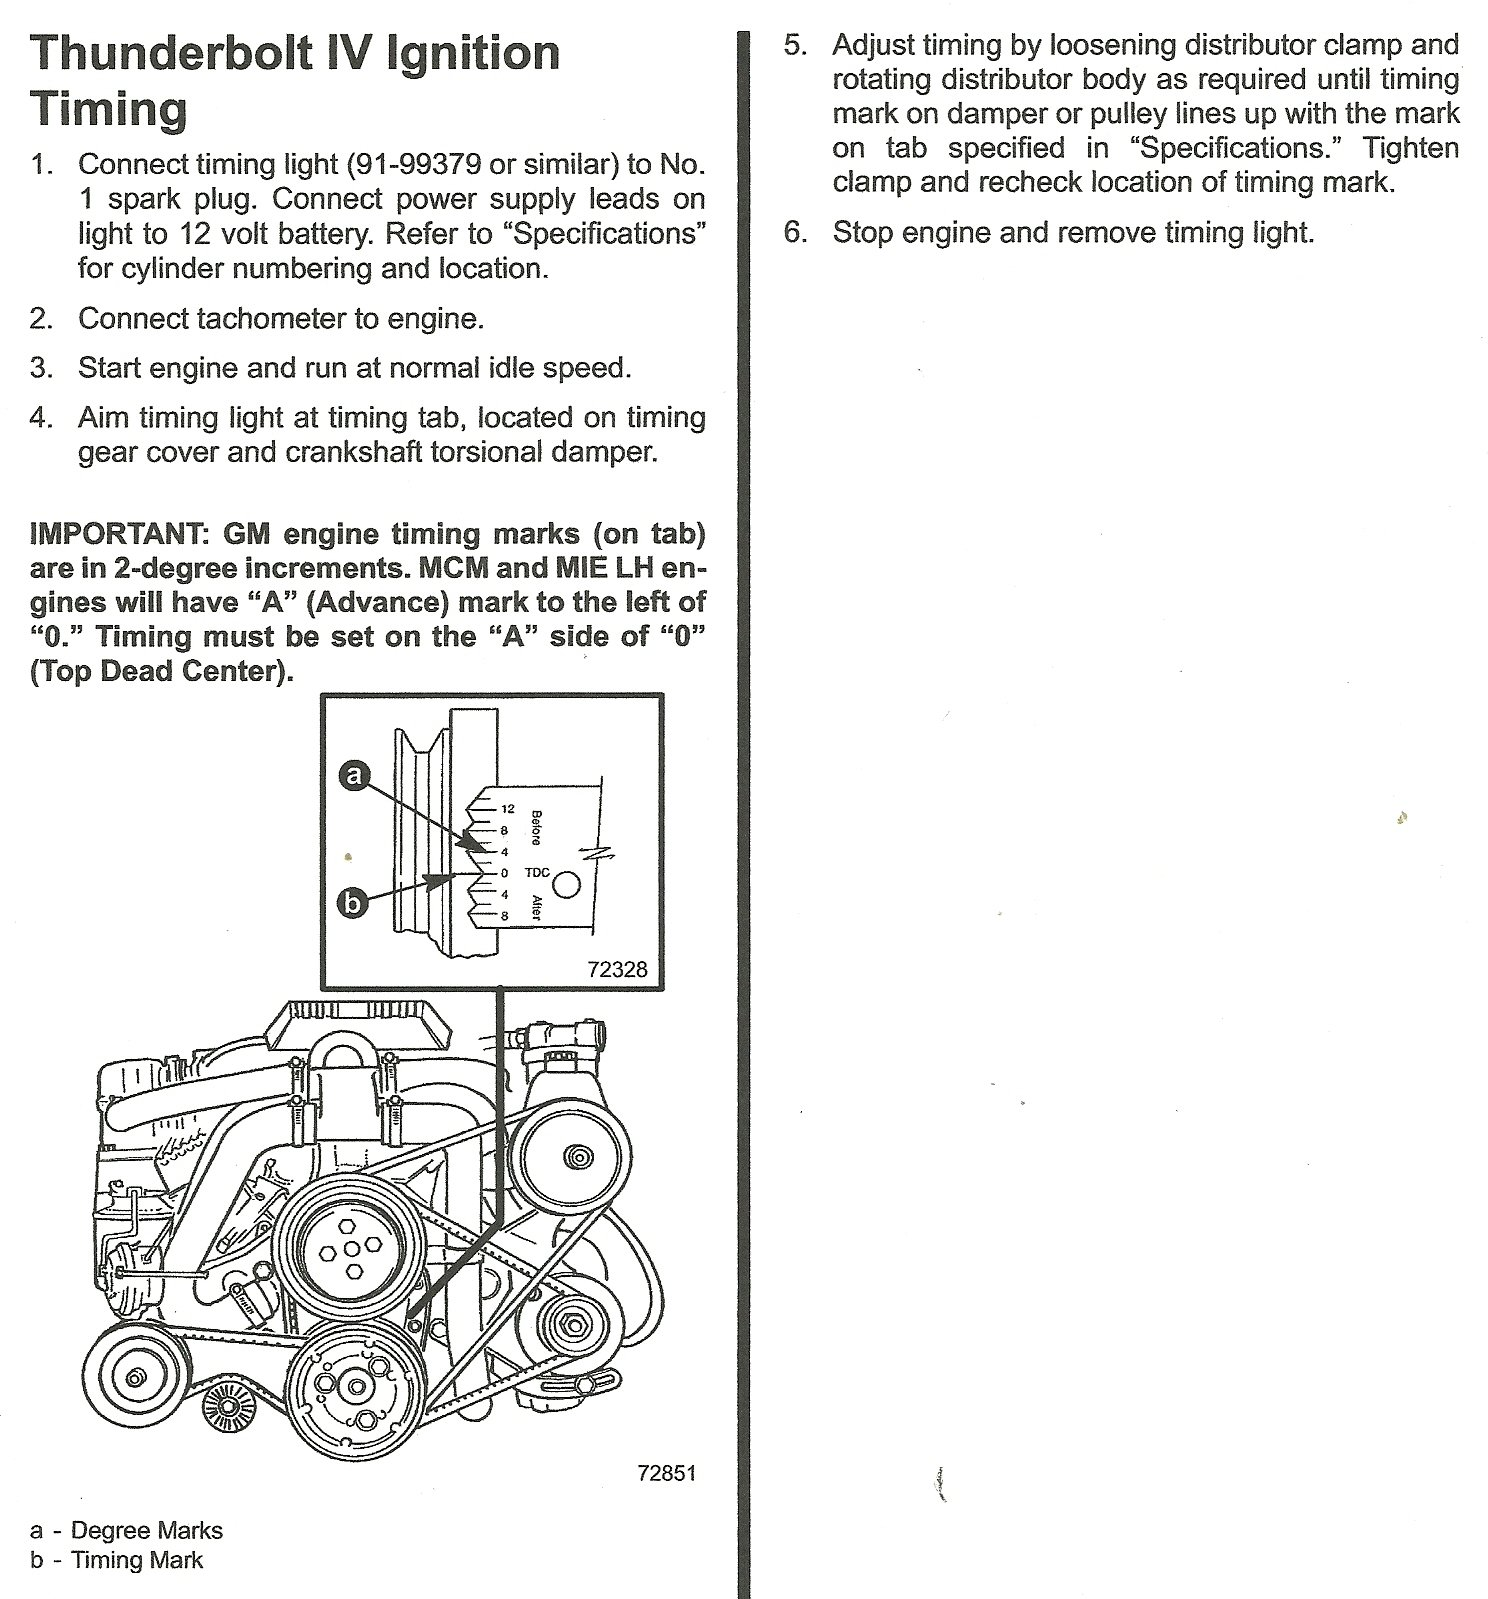 How dO I set the ignition timing on my 1993 Sea Ray 5l GM engine